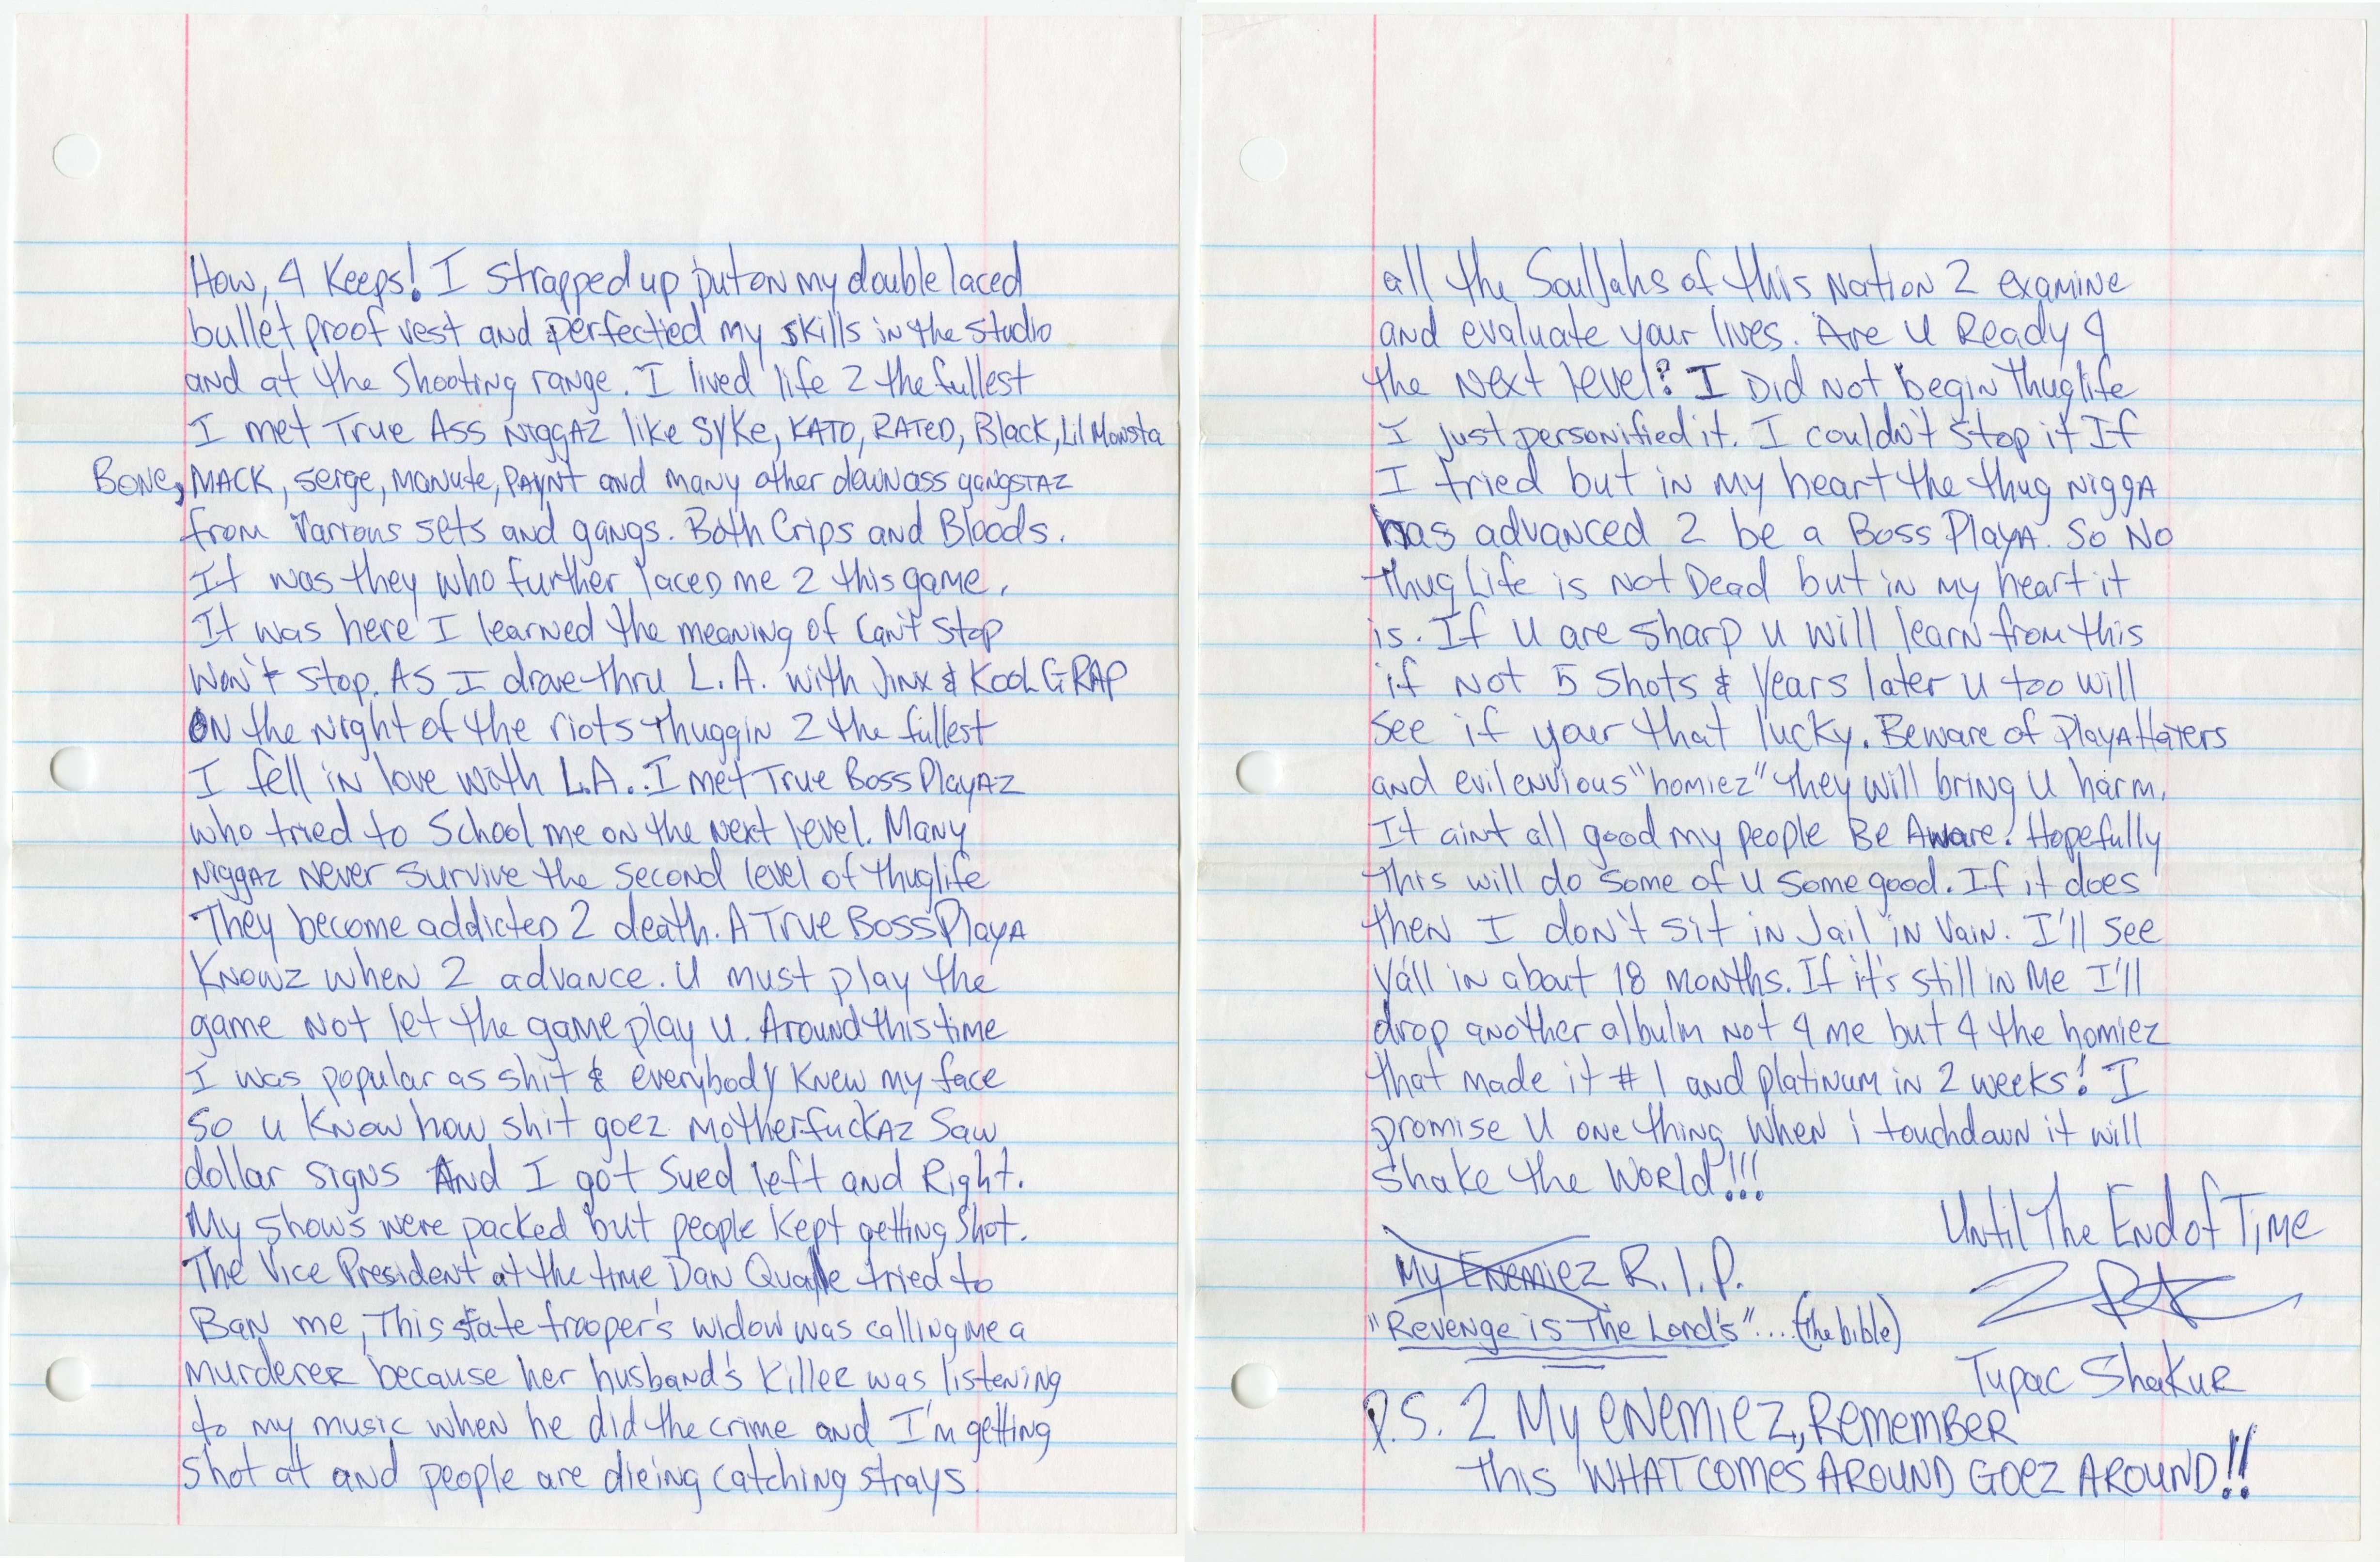 Pac Letter 2